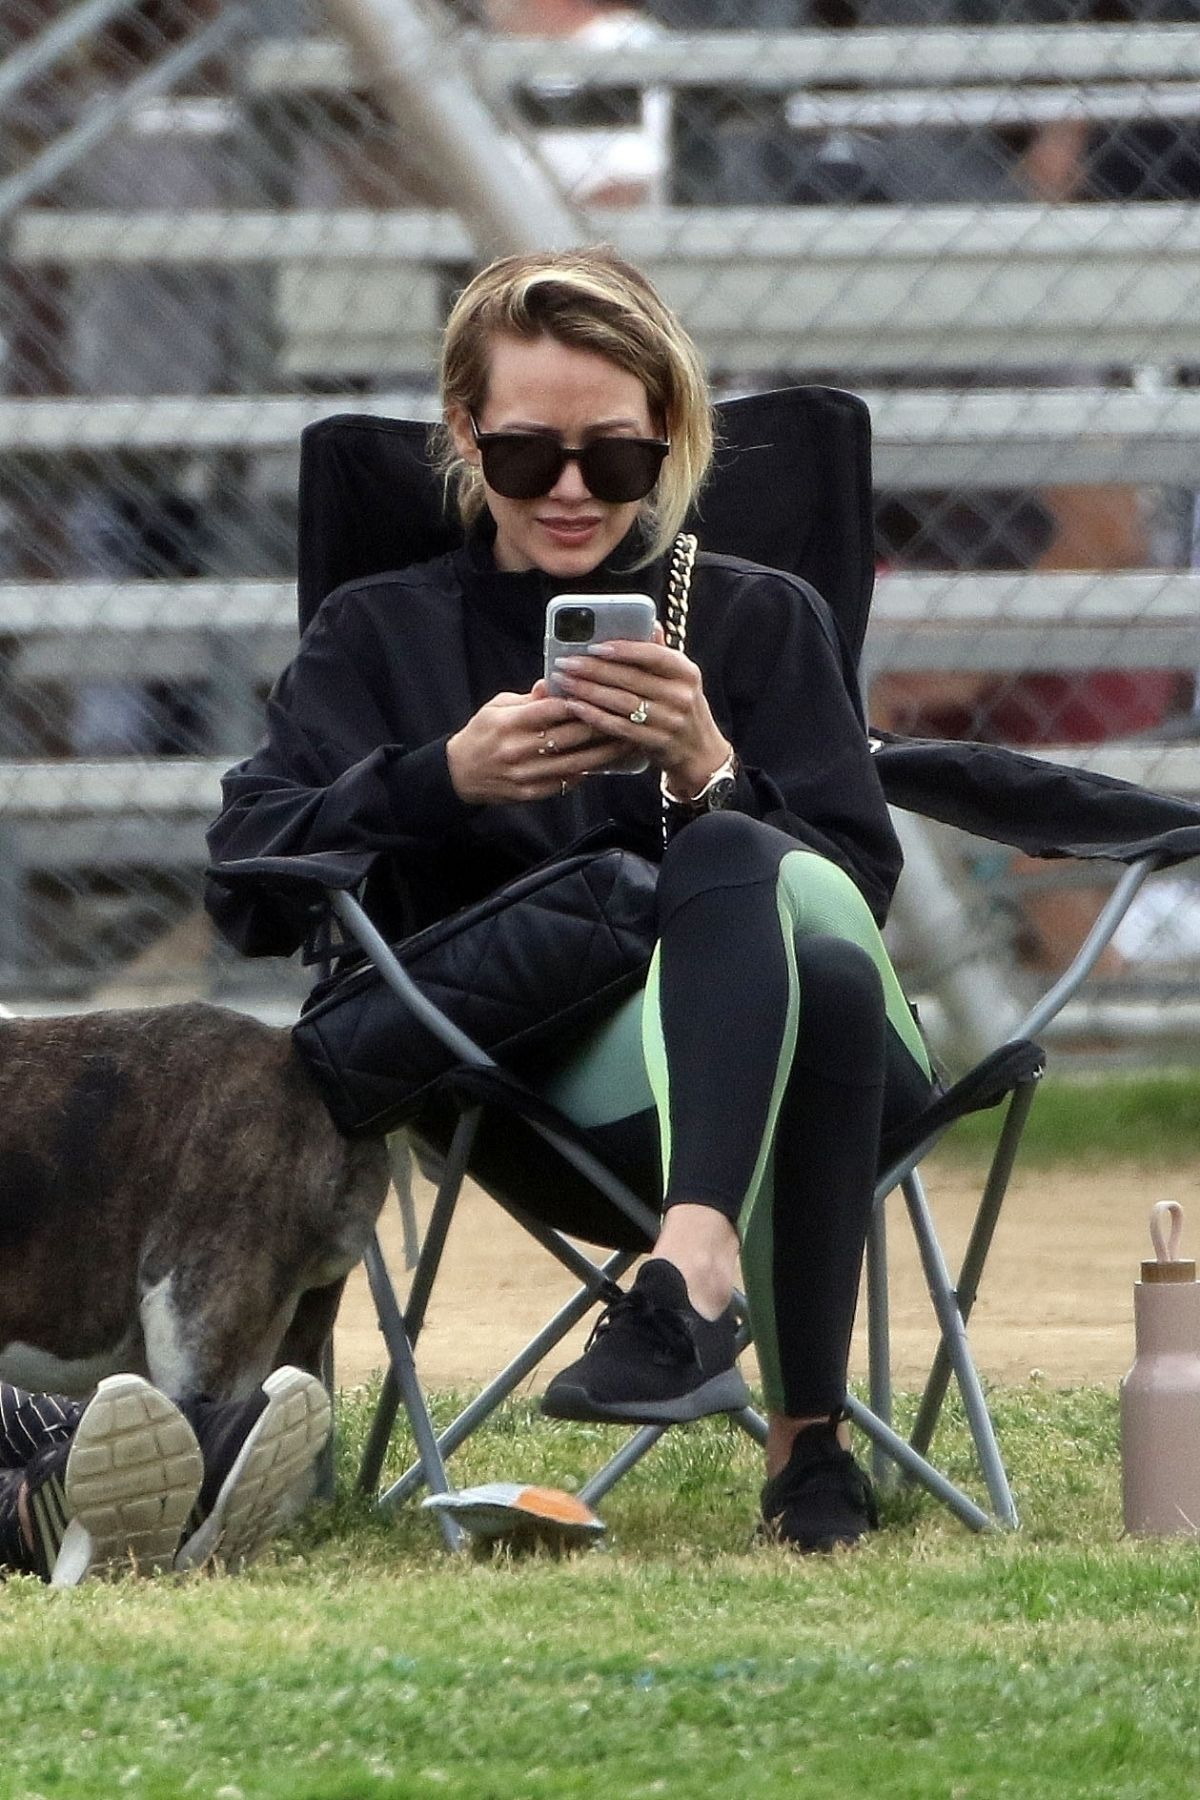 HILARY DUFF at a Soccer Game in Los Angeles 02/29/